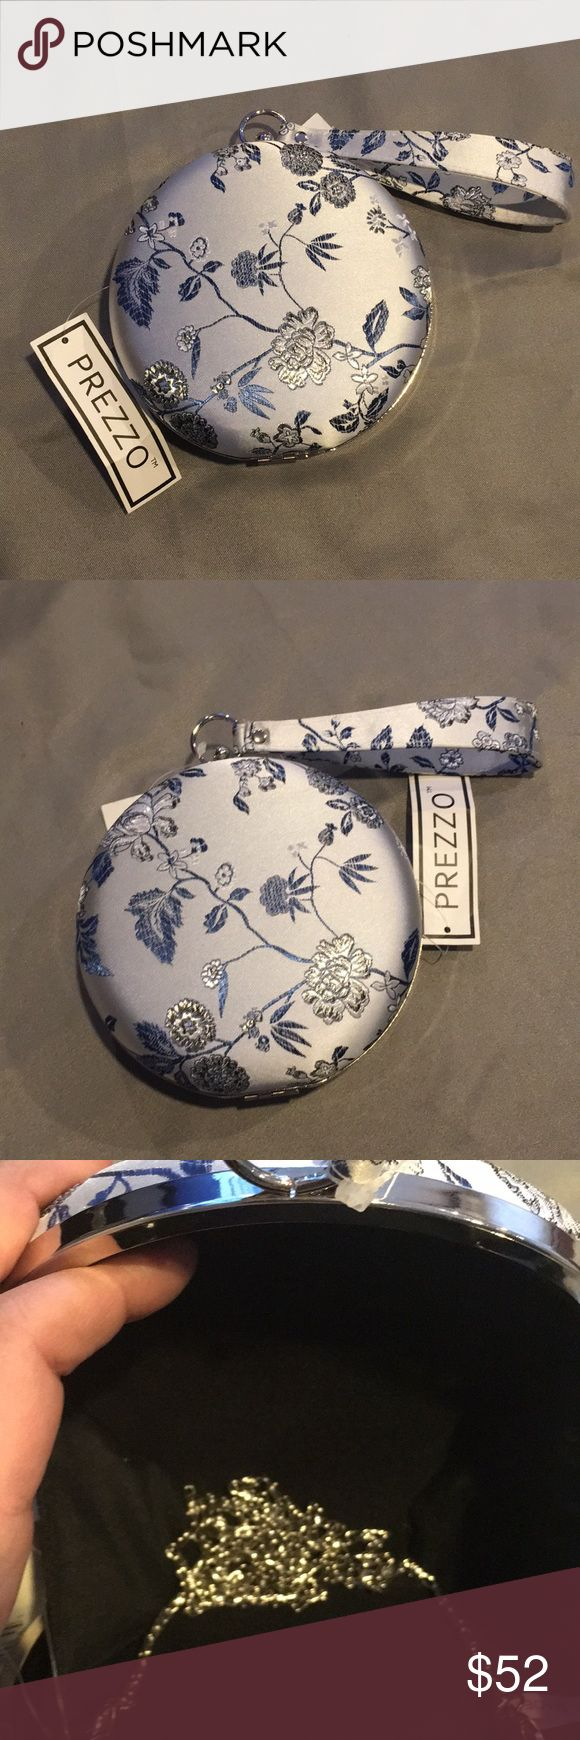 NWT Prezzo Silver, Blue and White Round Purse NWT Prezzo Silver, Blue and White Round Purse. It's fabric with flowers embroidered on it. It can be used as a clutch or shoulder purse. The shoulder strap is removable. Measures approx 6 inches round. The clutch strap is approx 6 inches long and the shoulder strap has approx a 21 inch drop. Prezzo Bags Clutches & Wristlets